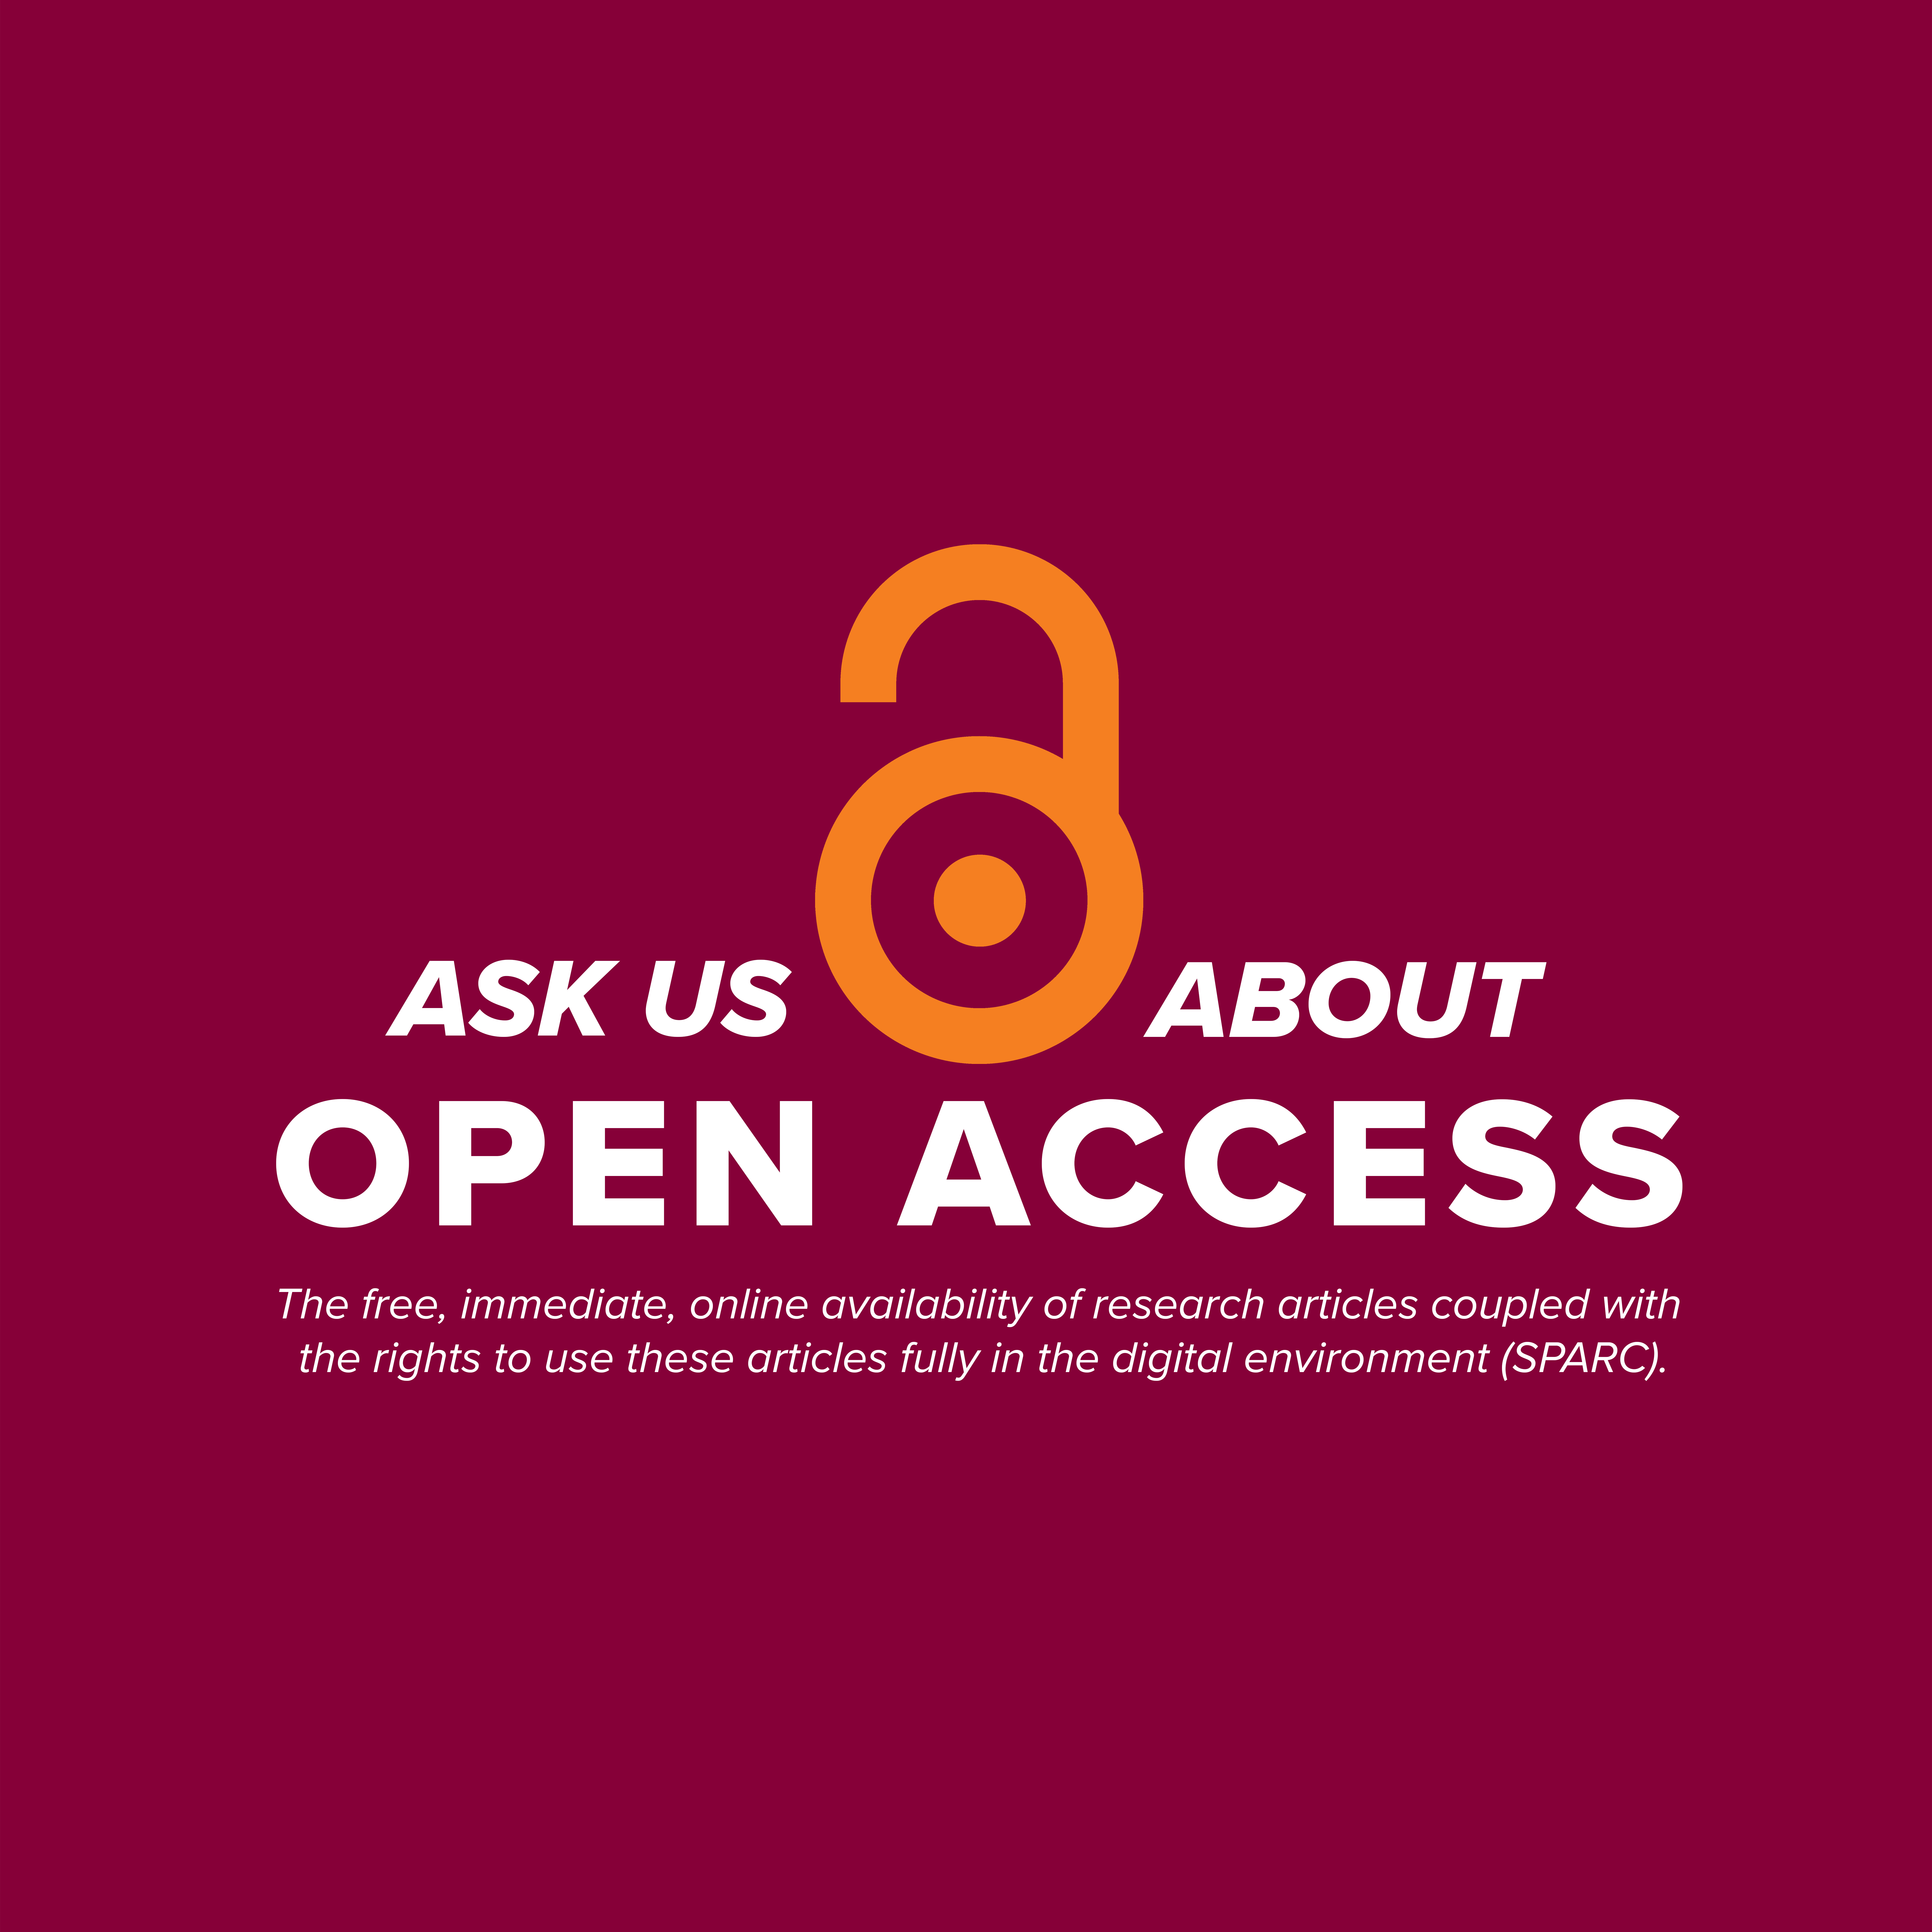 Ask us about open access.